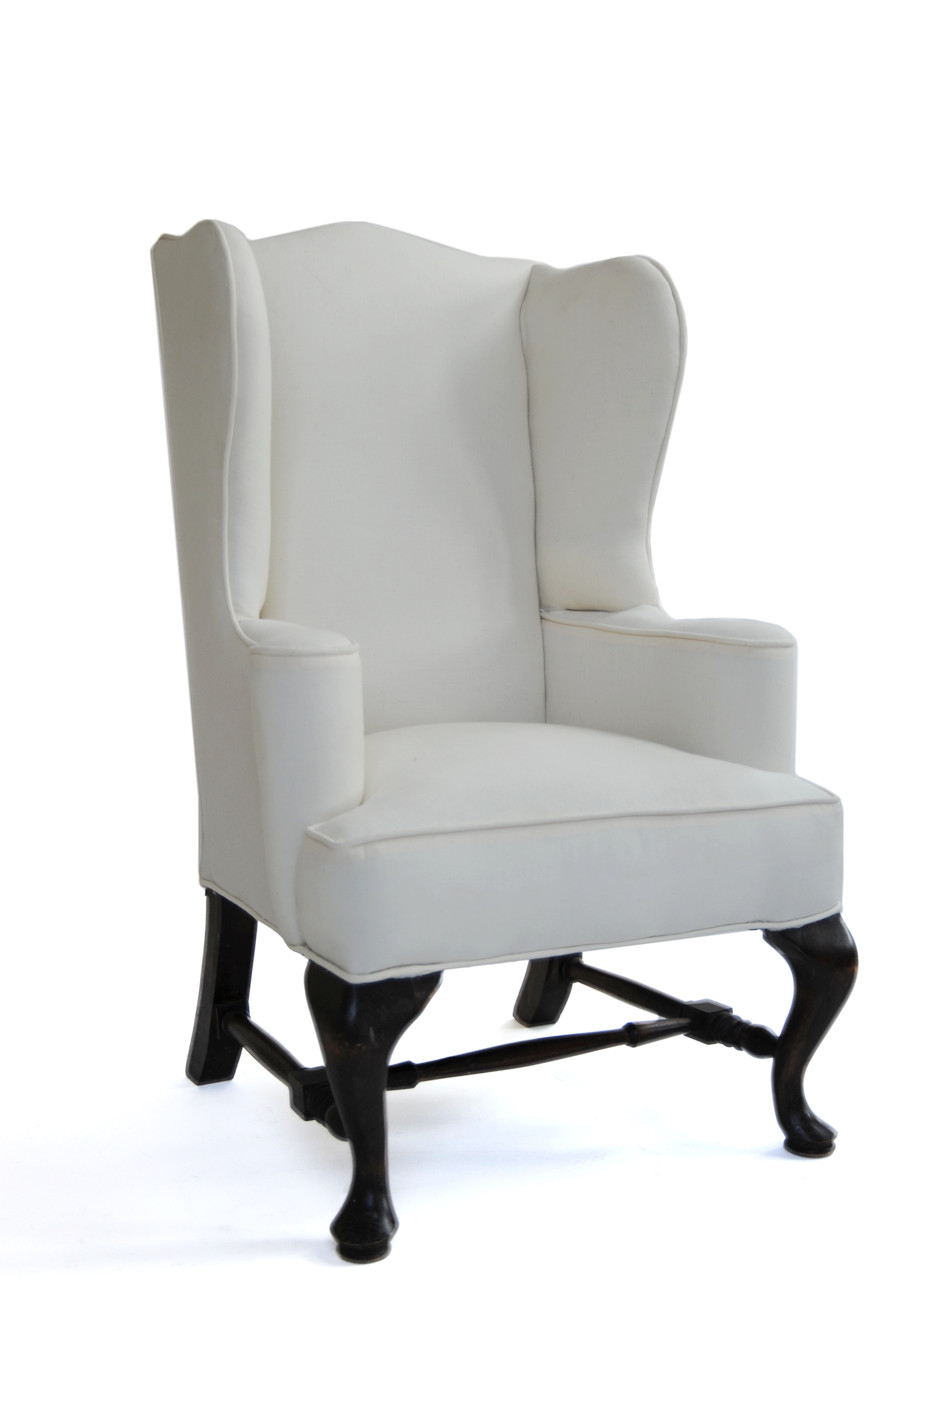 Wingback Chair Unknown Designer Unknown Production USA 1920s recovered in muslin chair: H 29.5 in, W 15.5 in, D 14.5 in; Seat: Seat H 12 in LIST PRICE: Cube $1,650 DESIGNER DISCOUNT PRICE: $1,402.50 LEAD TIME:3-5 Days Shipping & Handling QUANTITY IN STOCK: 1 ONLINE PLATFORMS: kM Web, Artsy, 1st Dibs